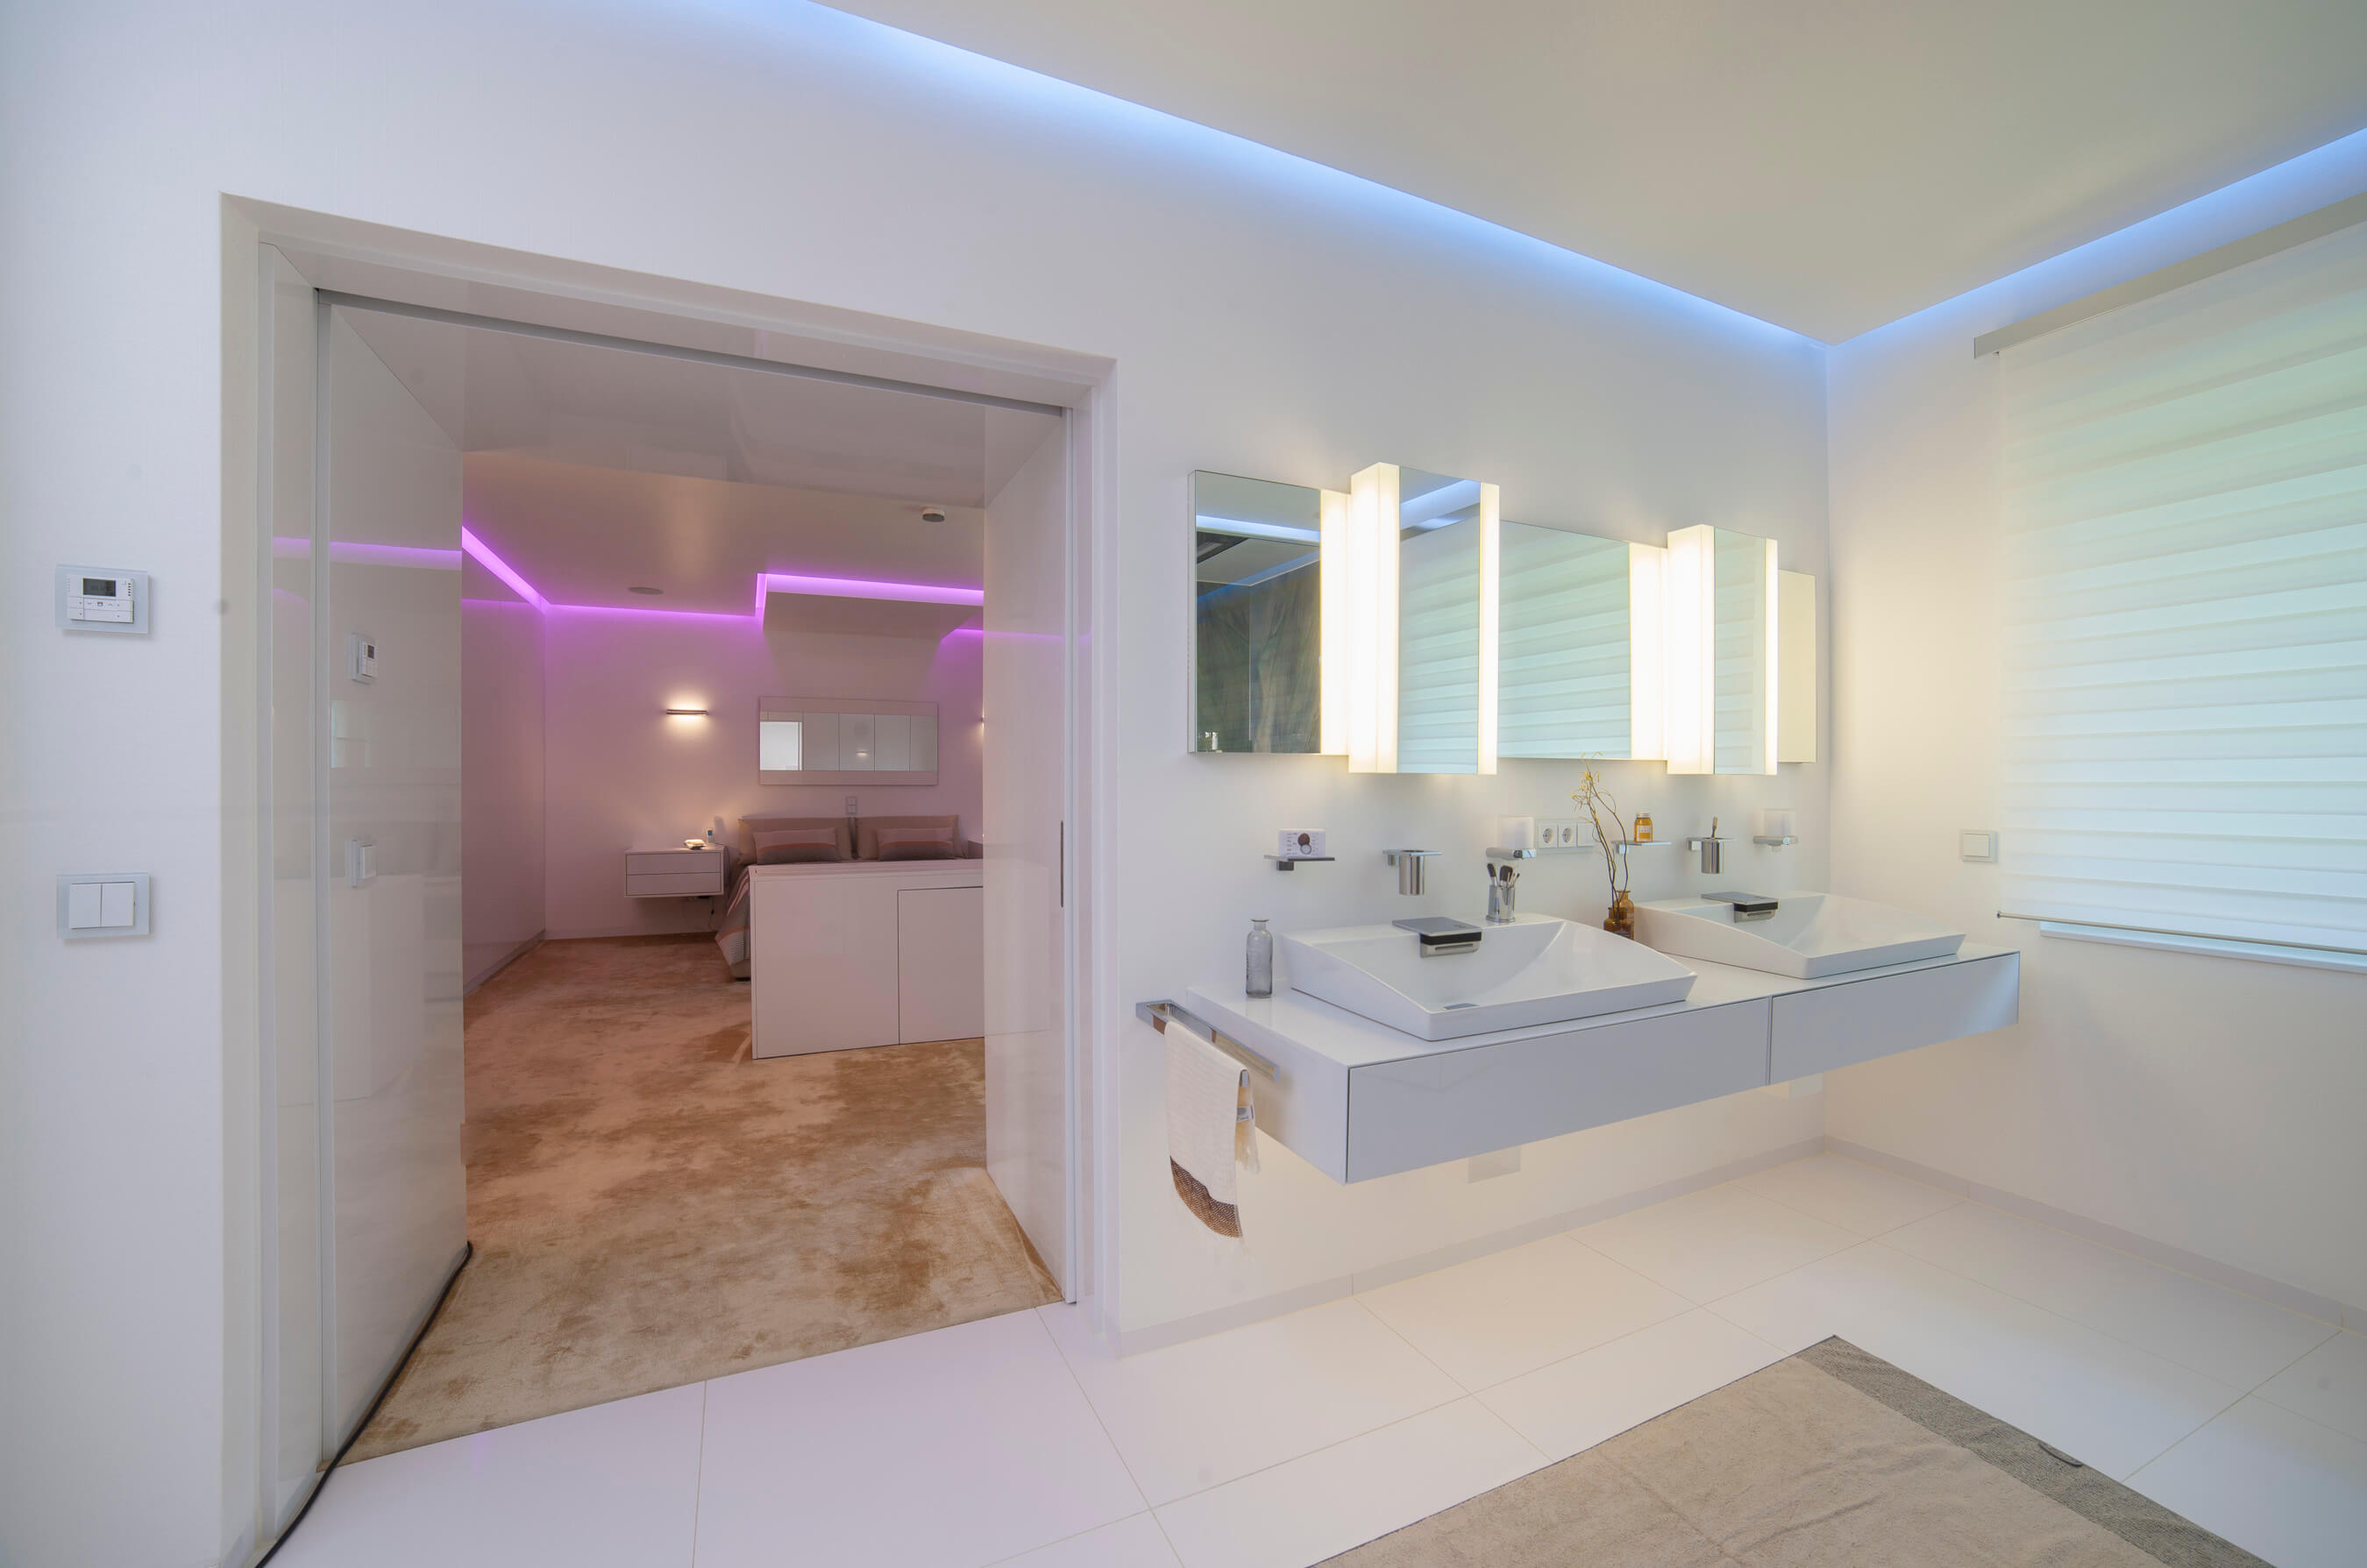 Exklusive Badezimmer Armaturen Luxus Bad Trendstudie Badarchitektur Purismus Mit Innovativer